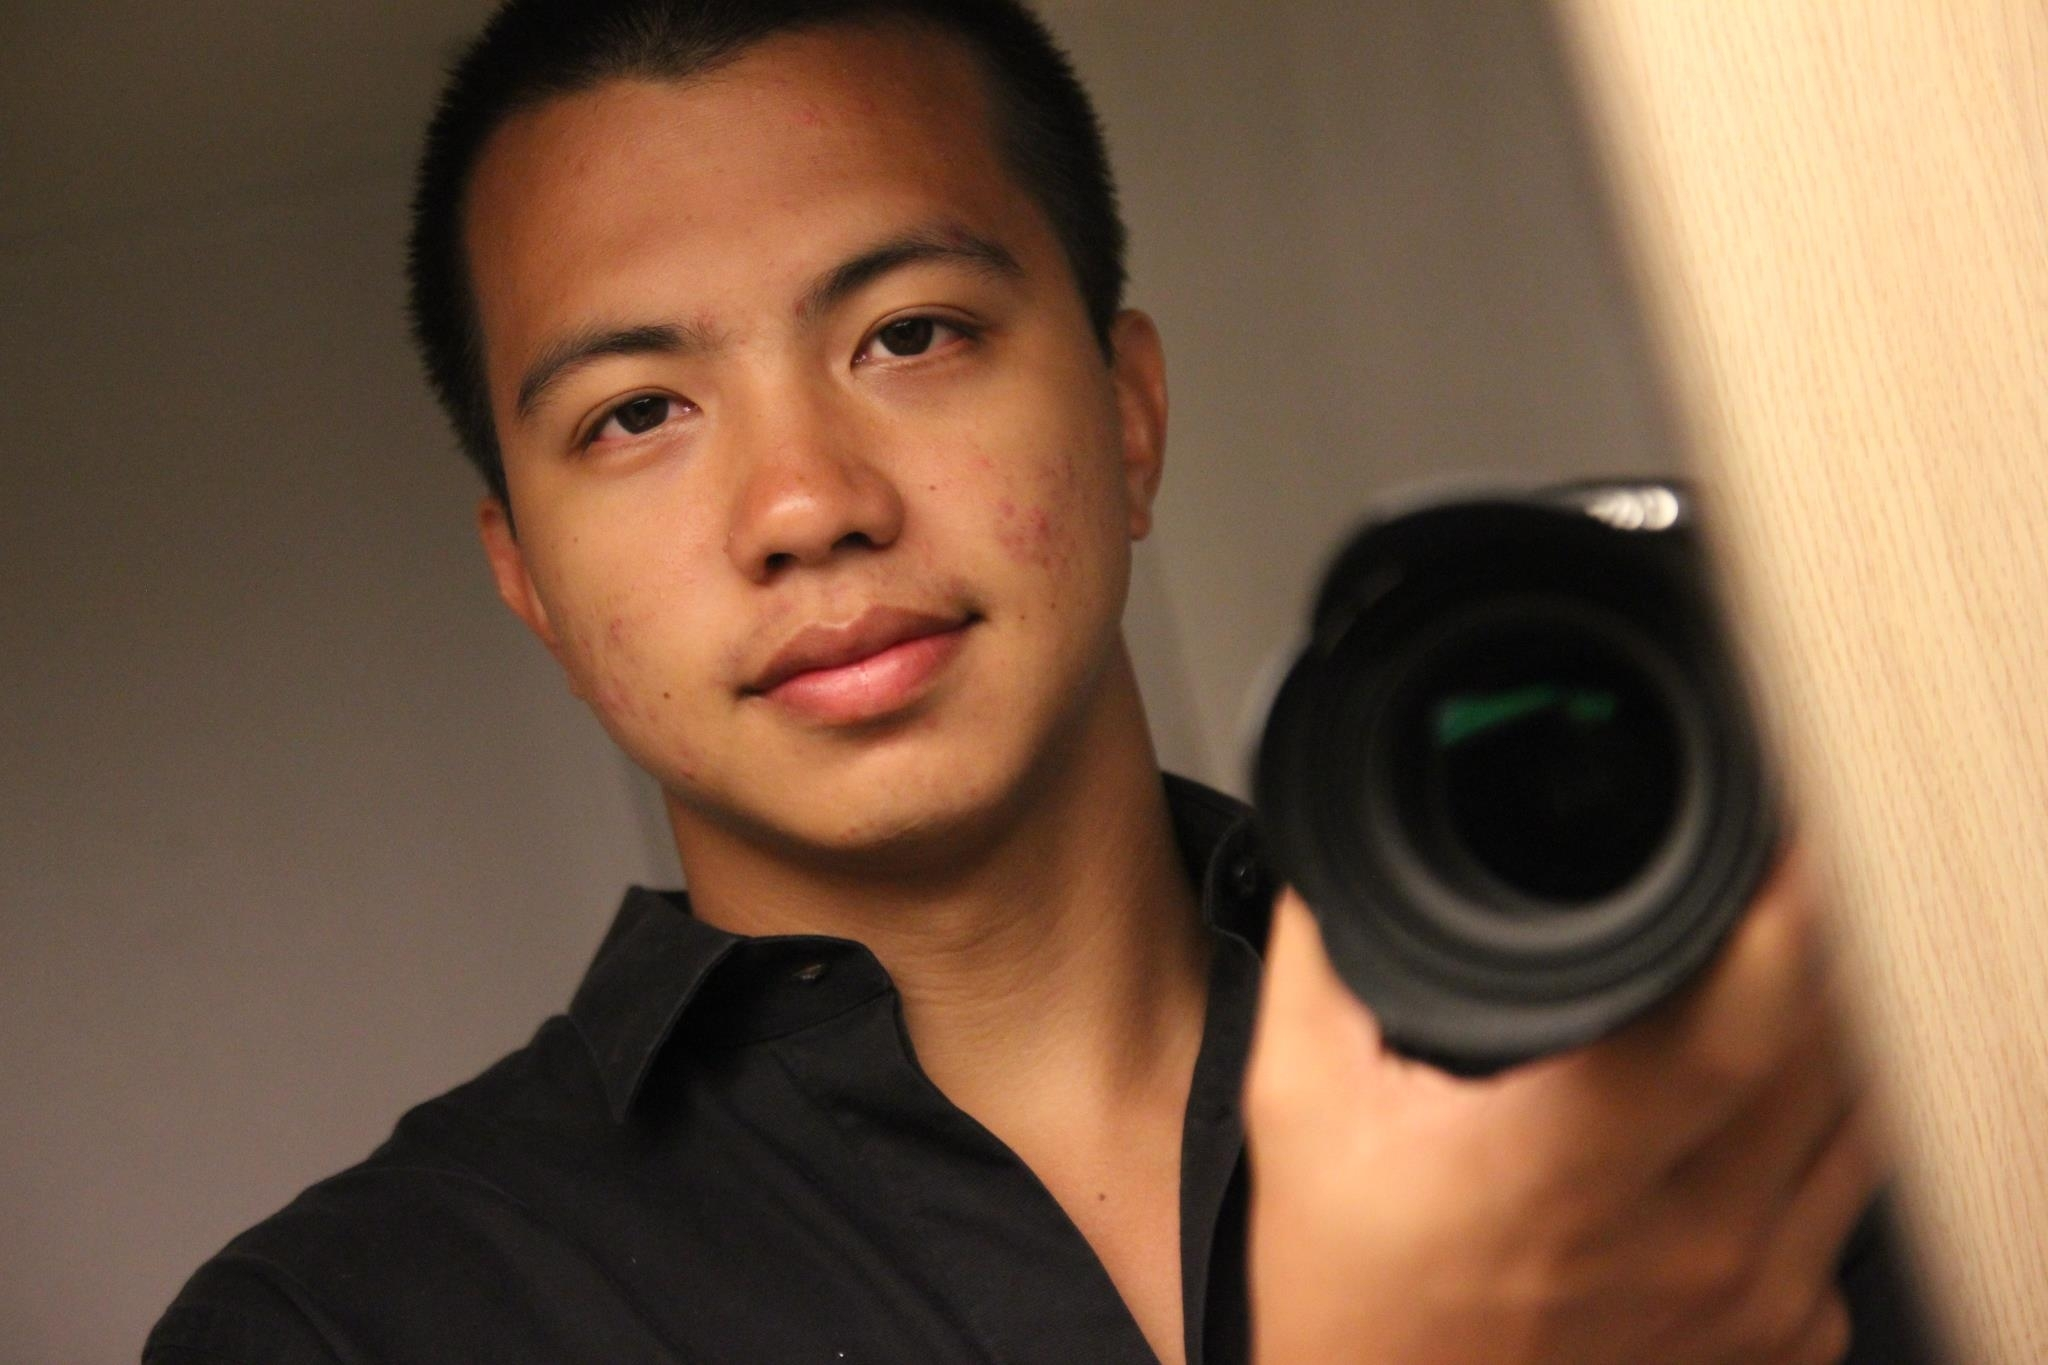 Carlos Yap - Director Sound / Photography  Carlos is a photographer turned cinematographer with a knack for cutting through large network bureaucracy and getting the shot, slowly and methodologically.